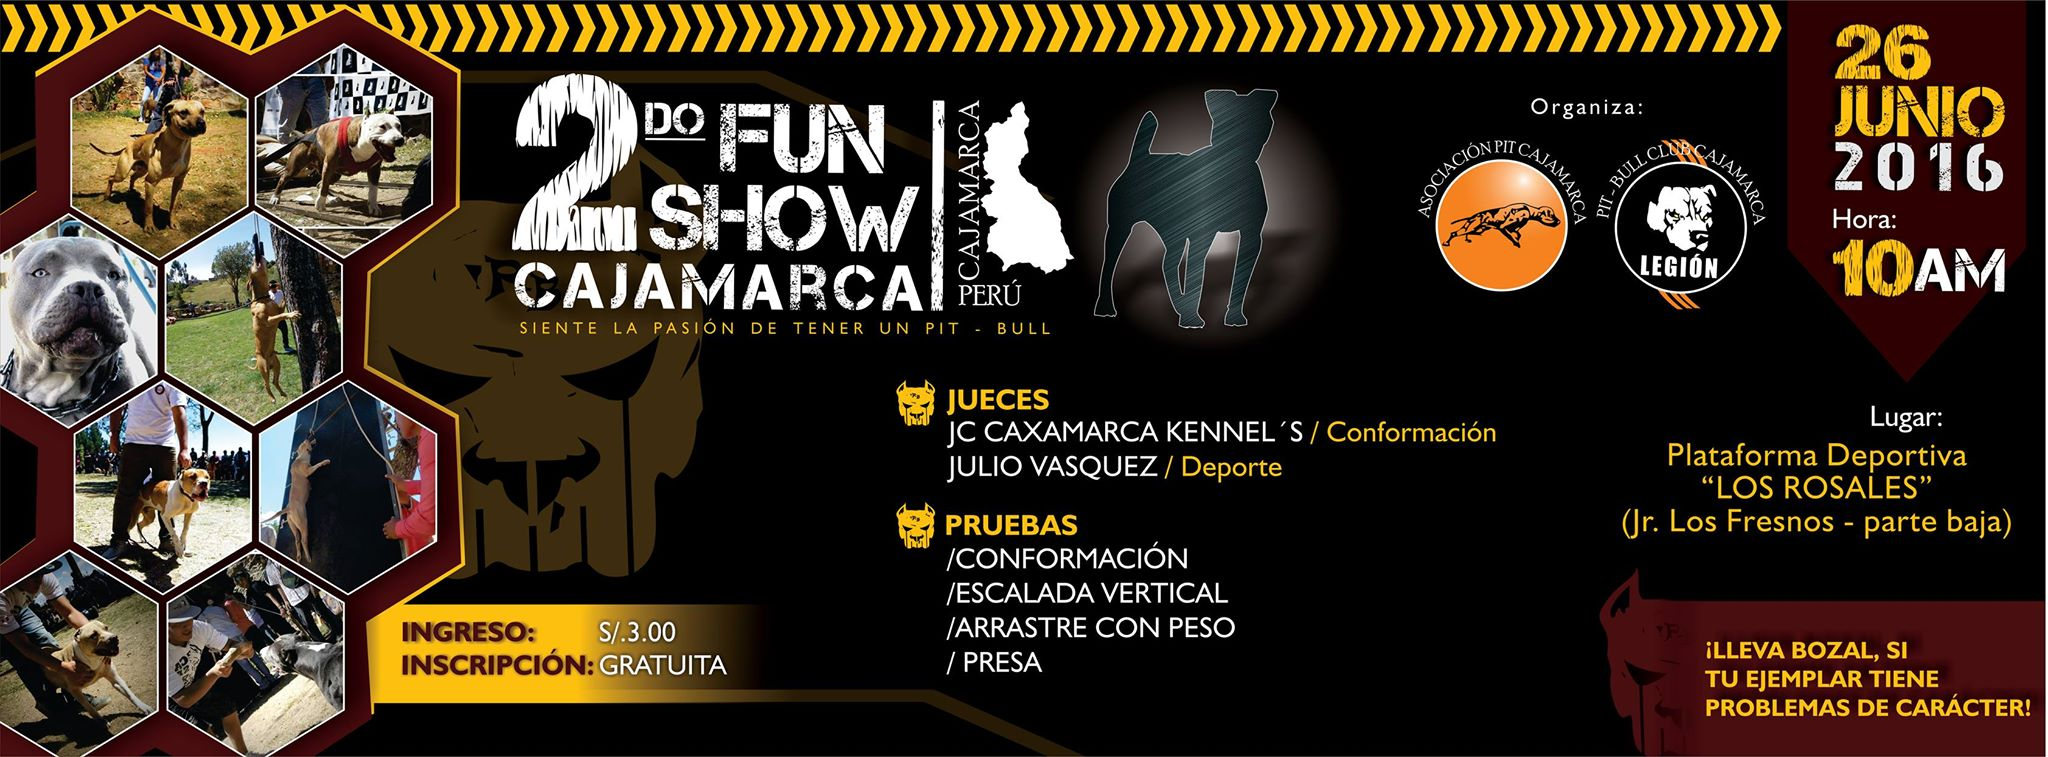 2do Fun Show Cajamarca 2016 /  26 de Junio